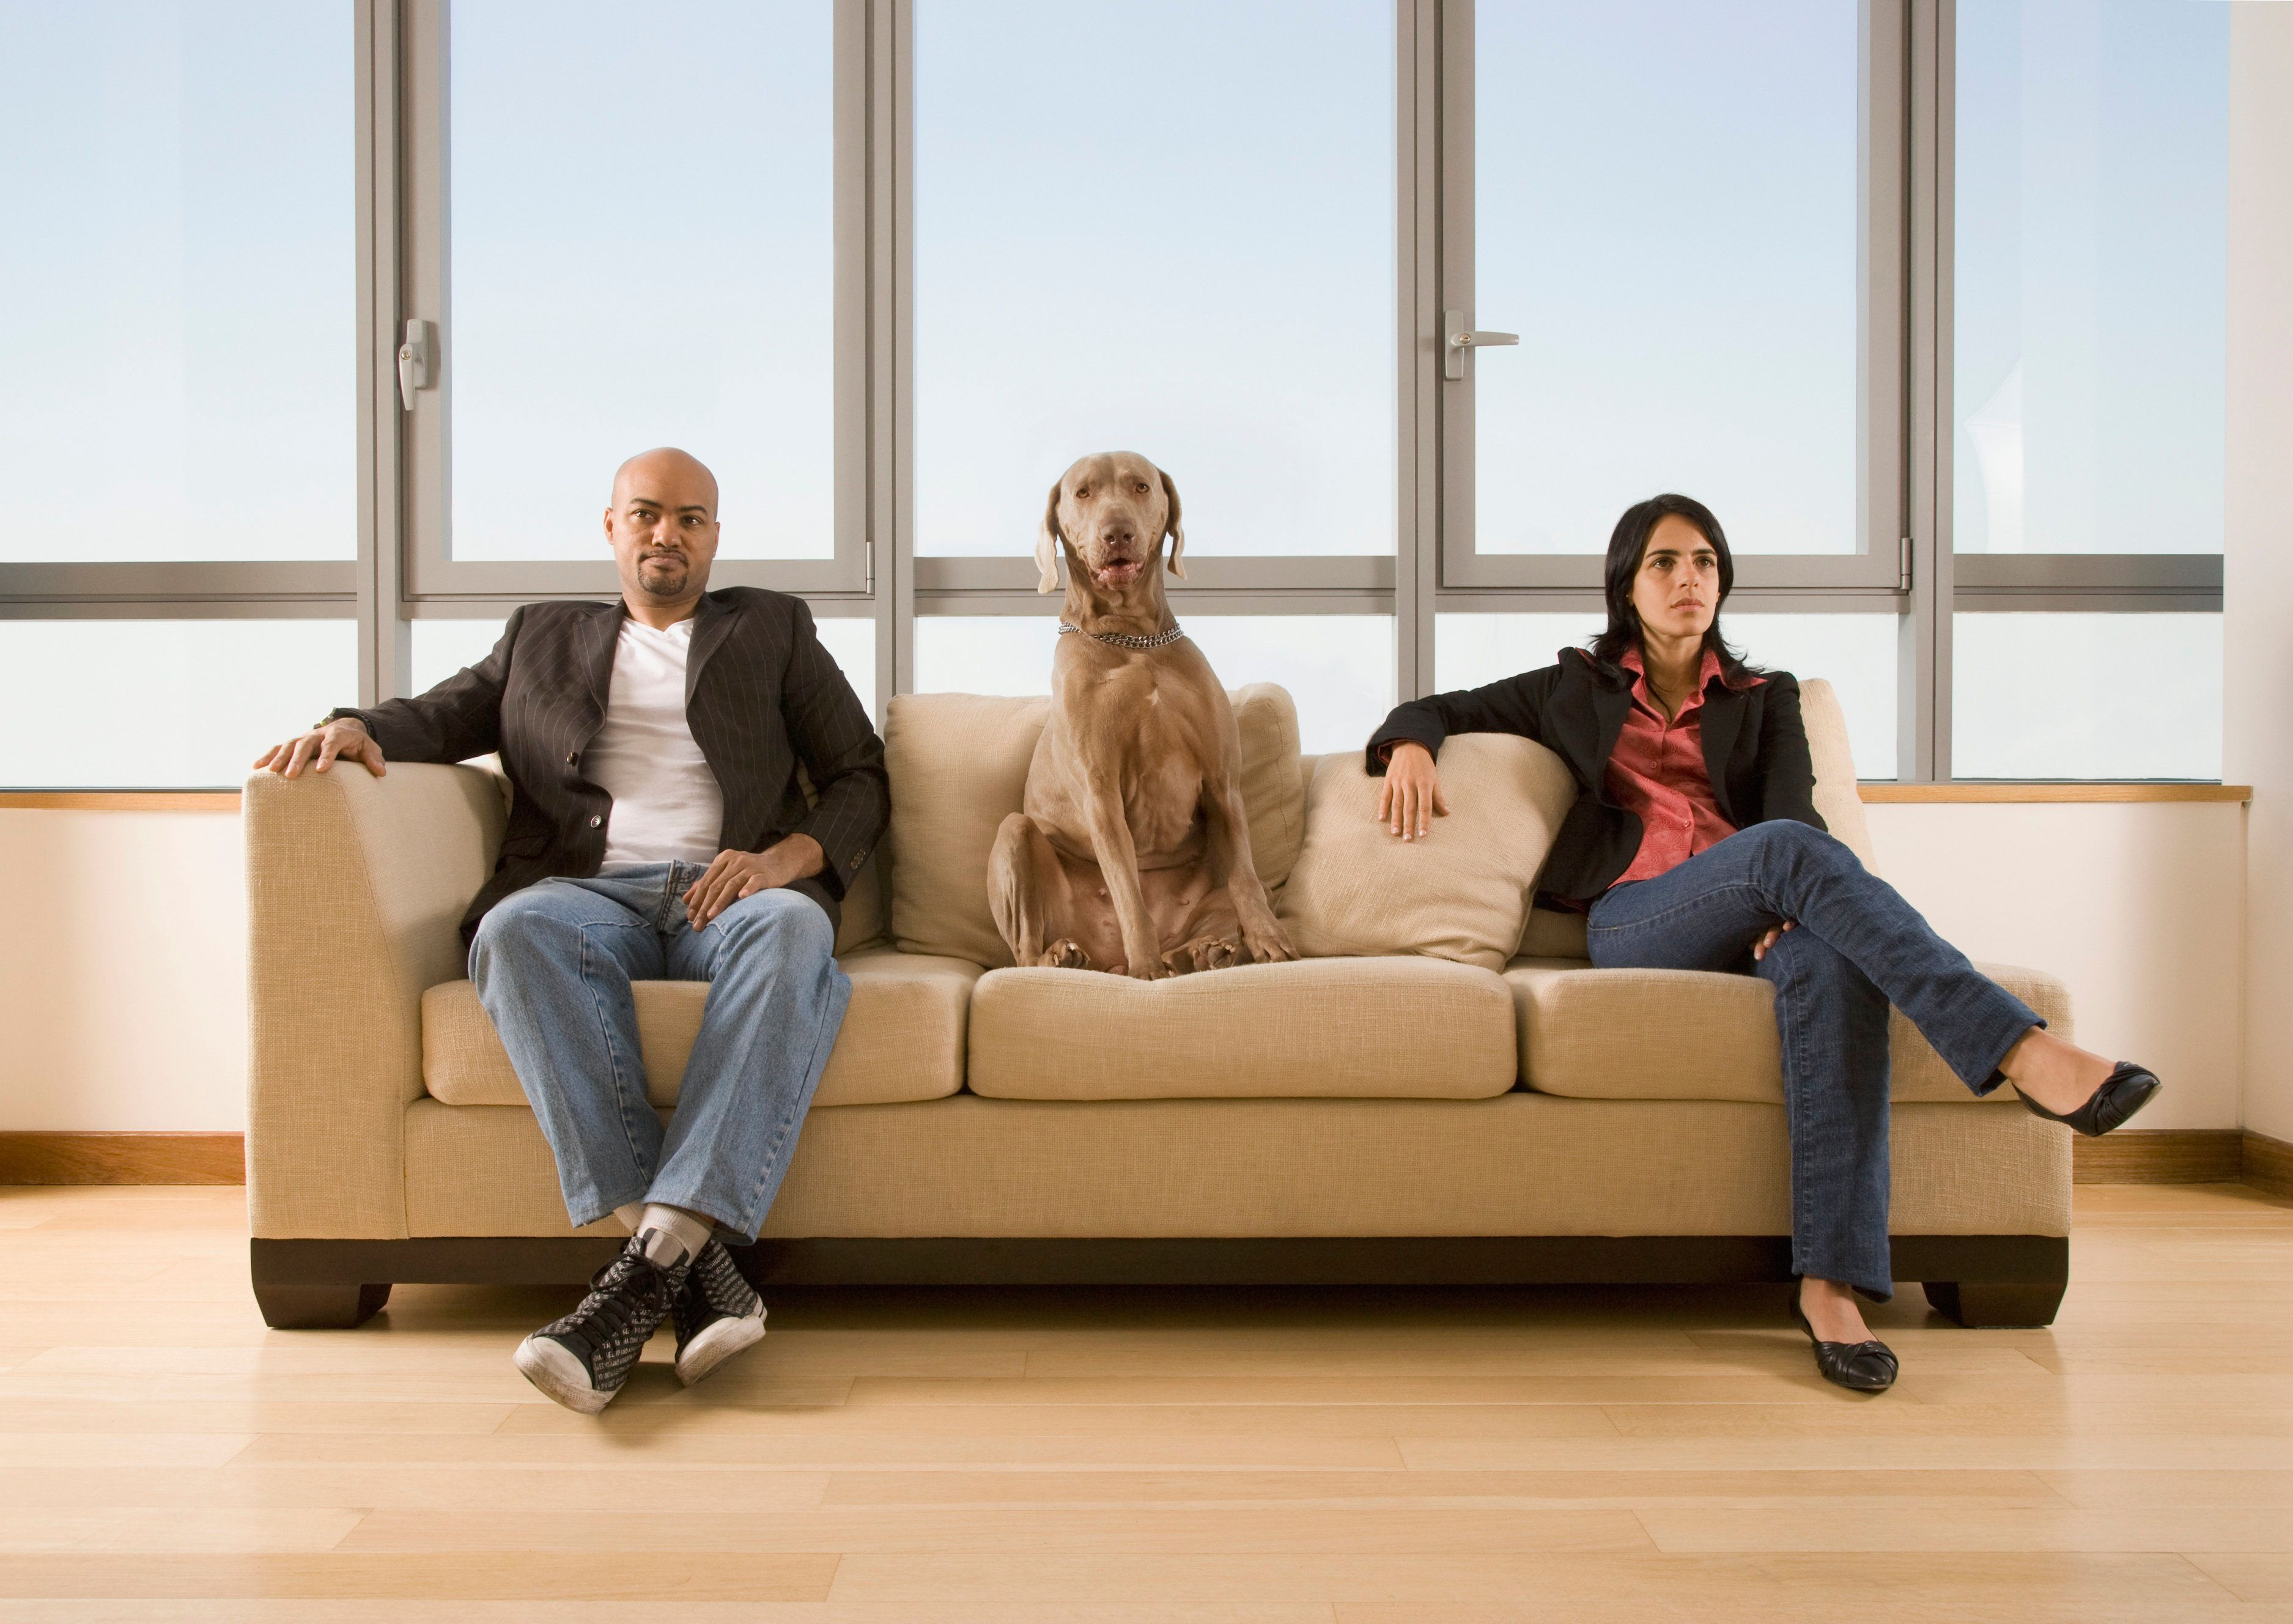 Thoughpets are generally considered property under divorcelaws, most people do not see their pets as the same as